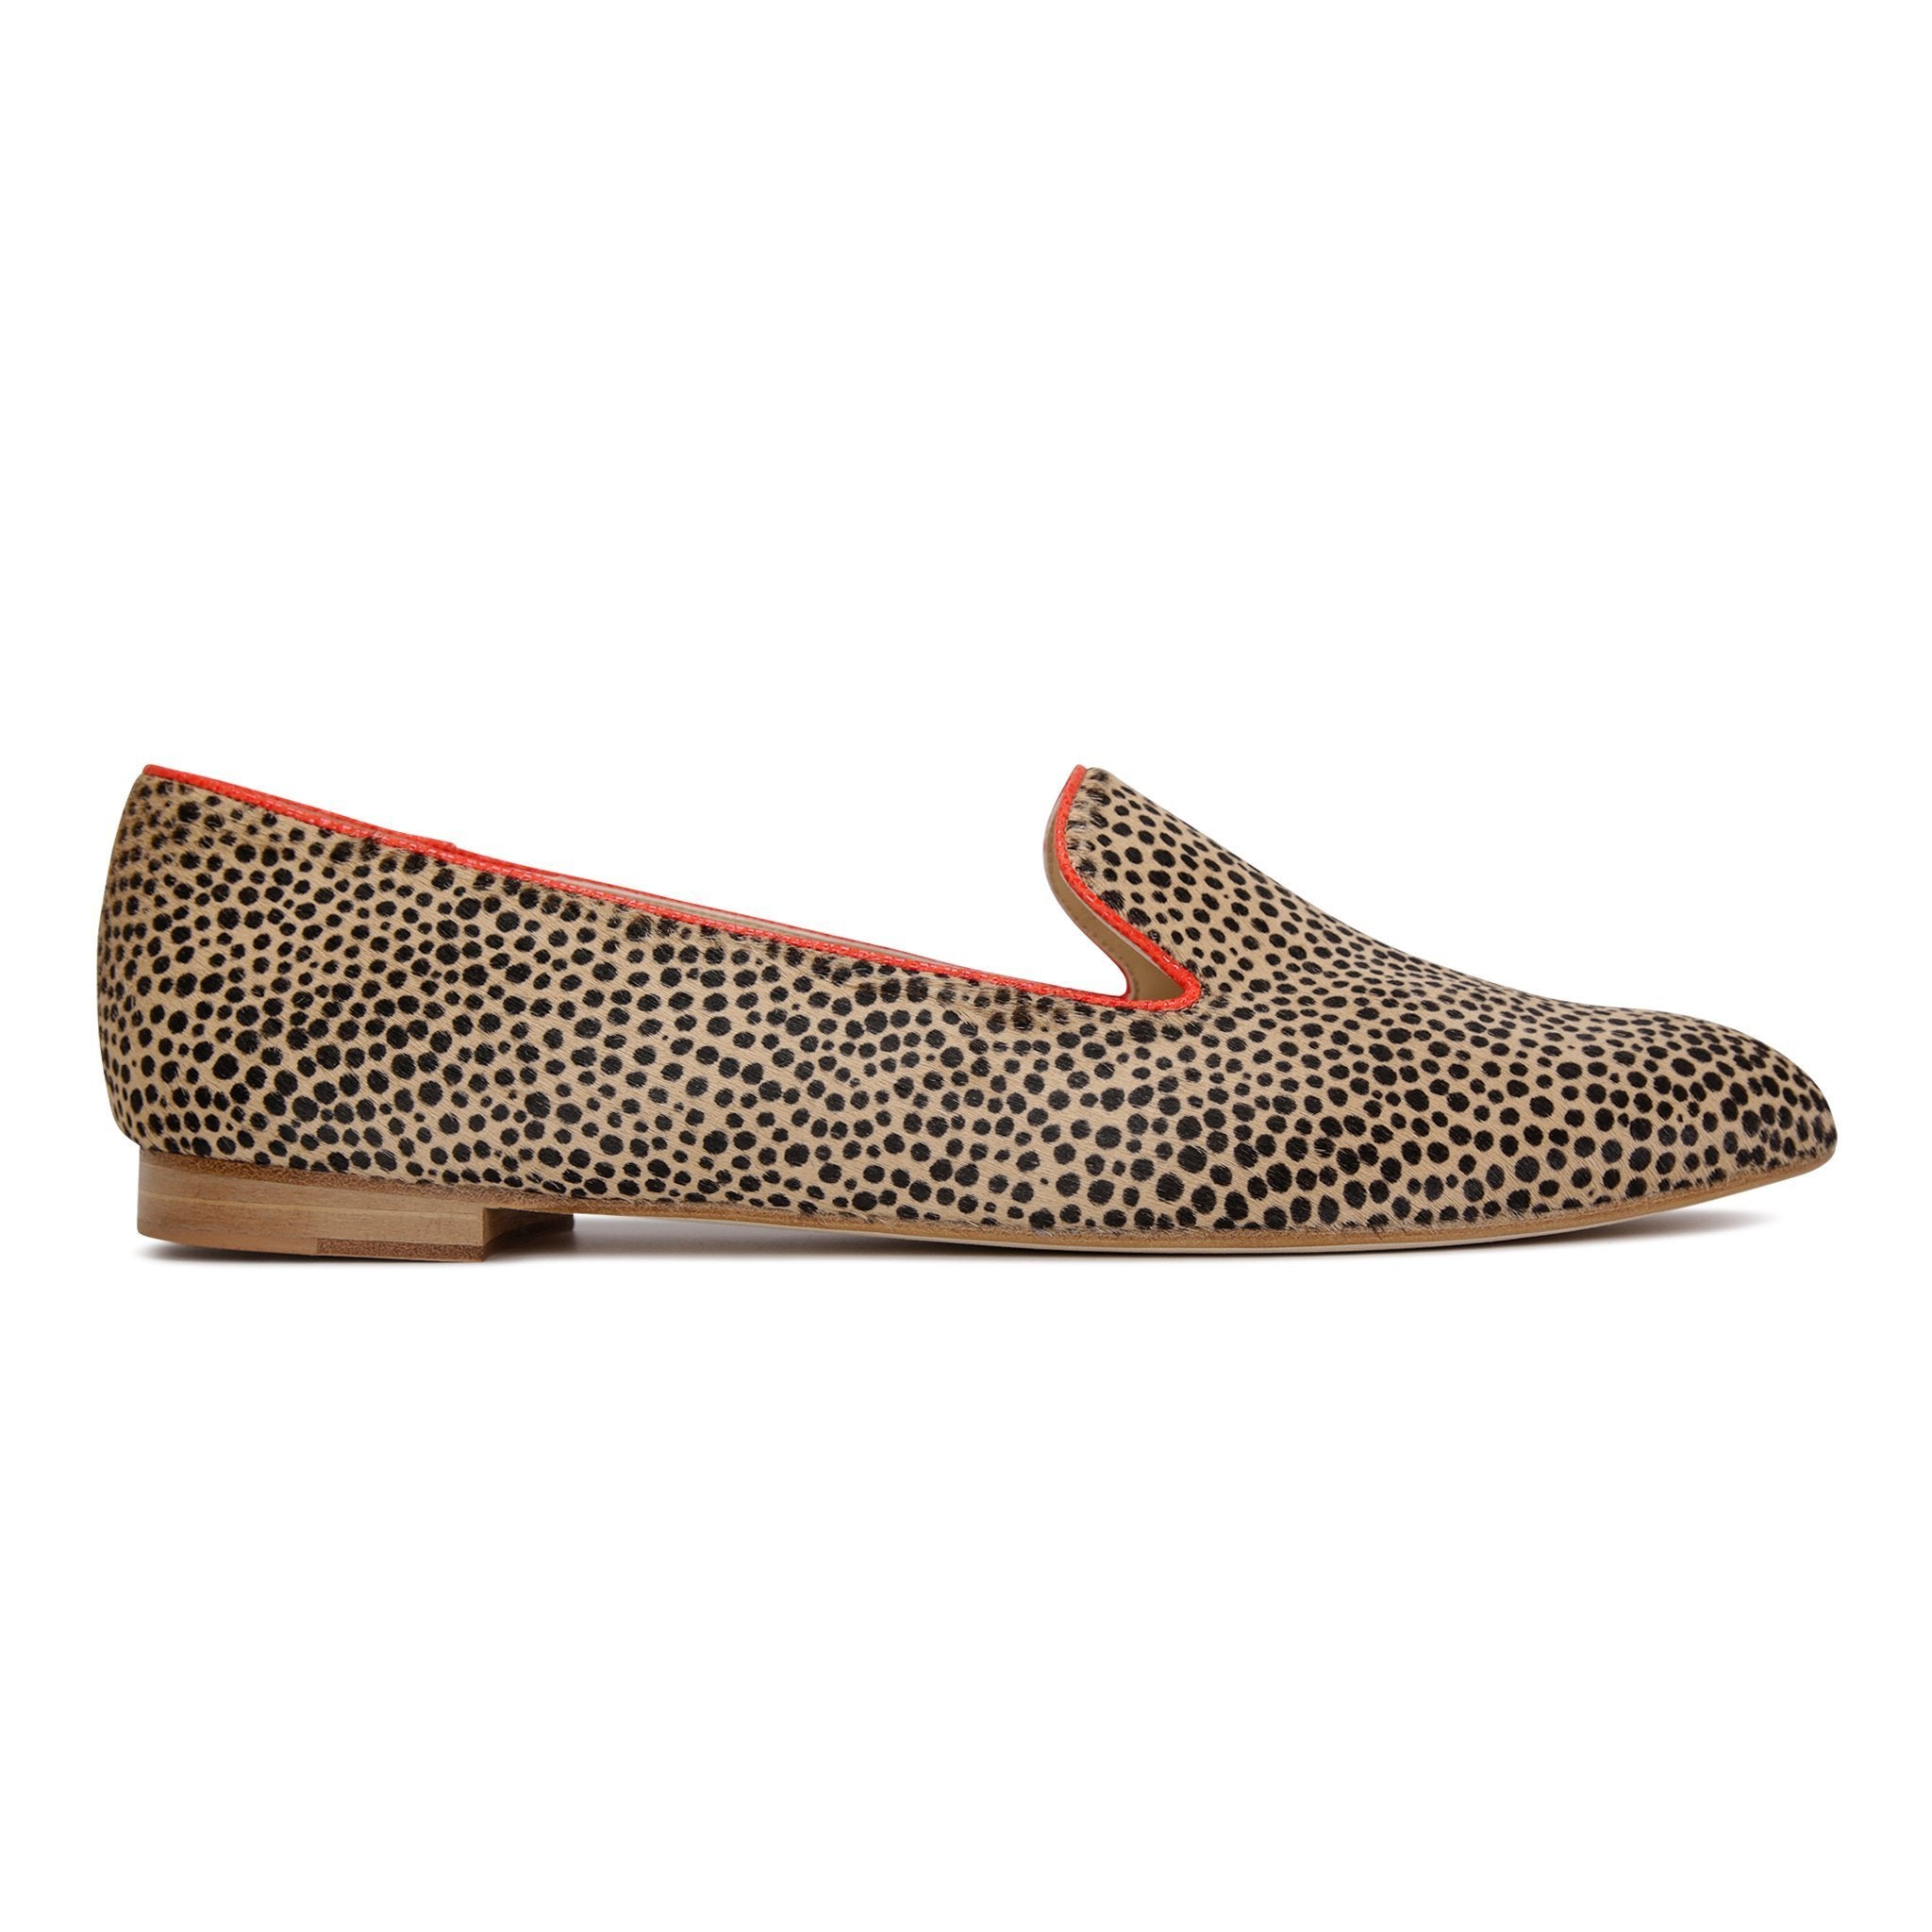 RAVENNA - Calf Hair Orange Cheetah, VIAJIYU - Women's Hand Made Sustainable Luxury Shoes. Made in Italy. Made to Order.